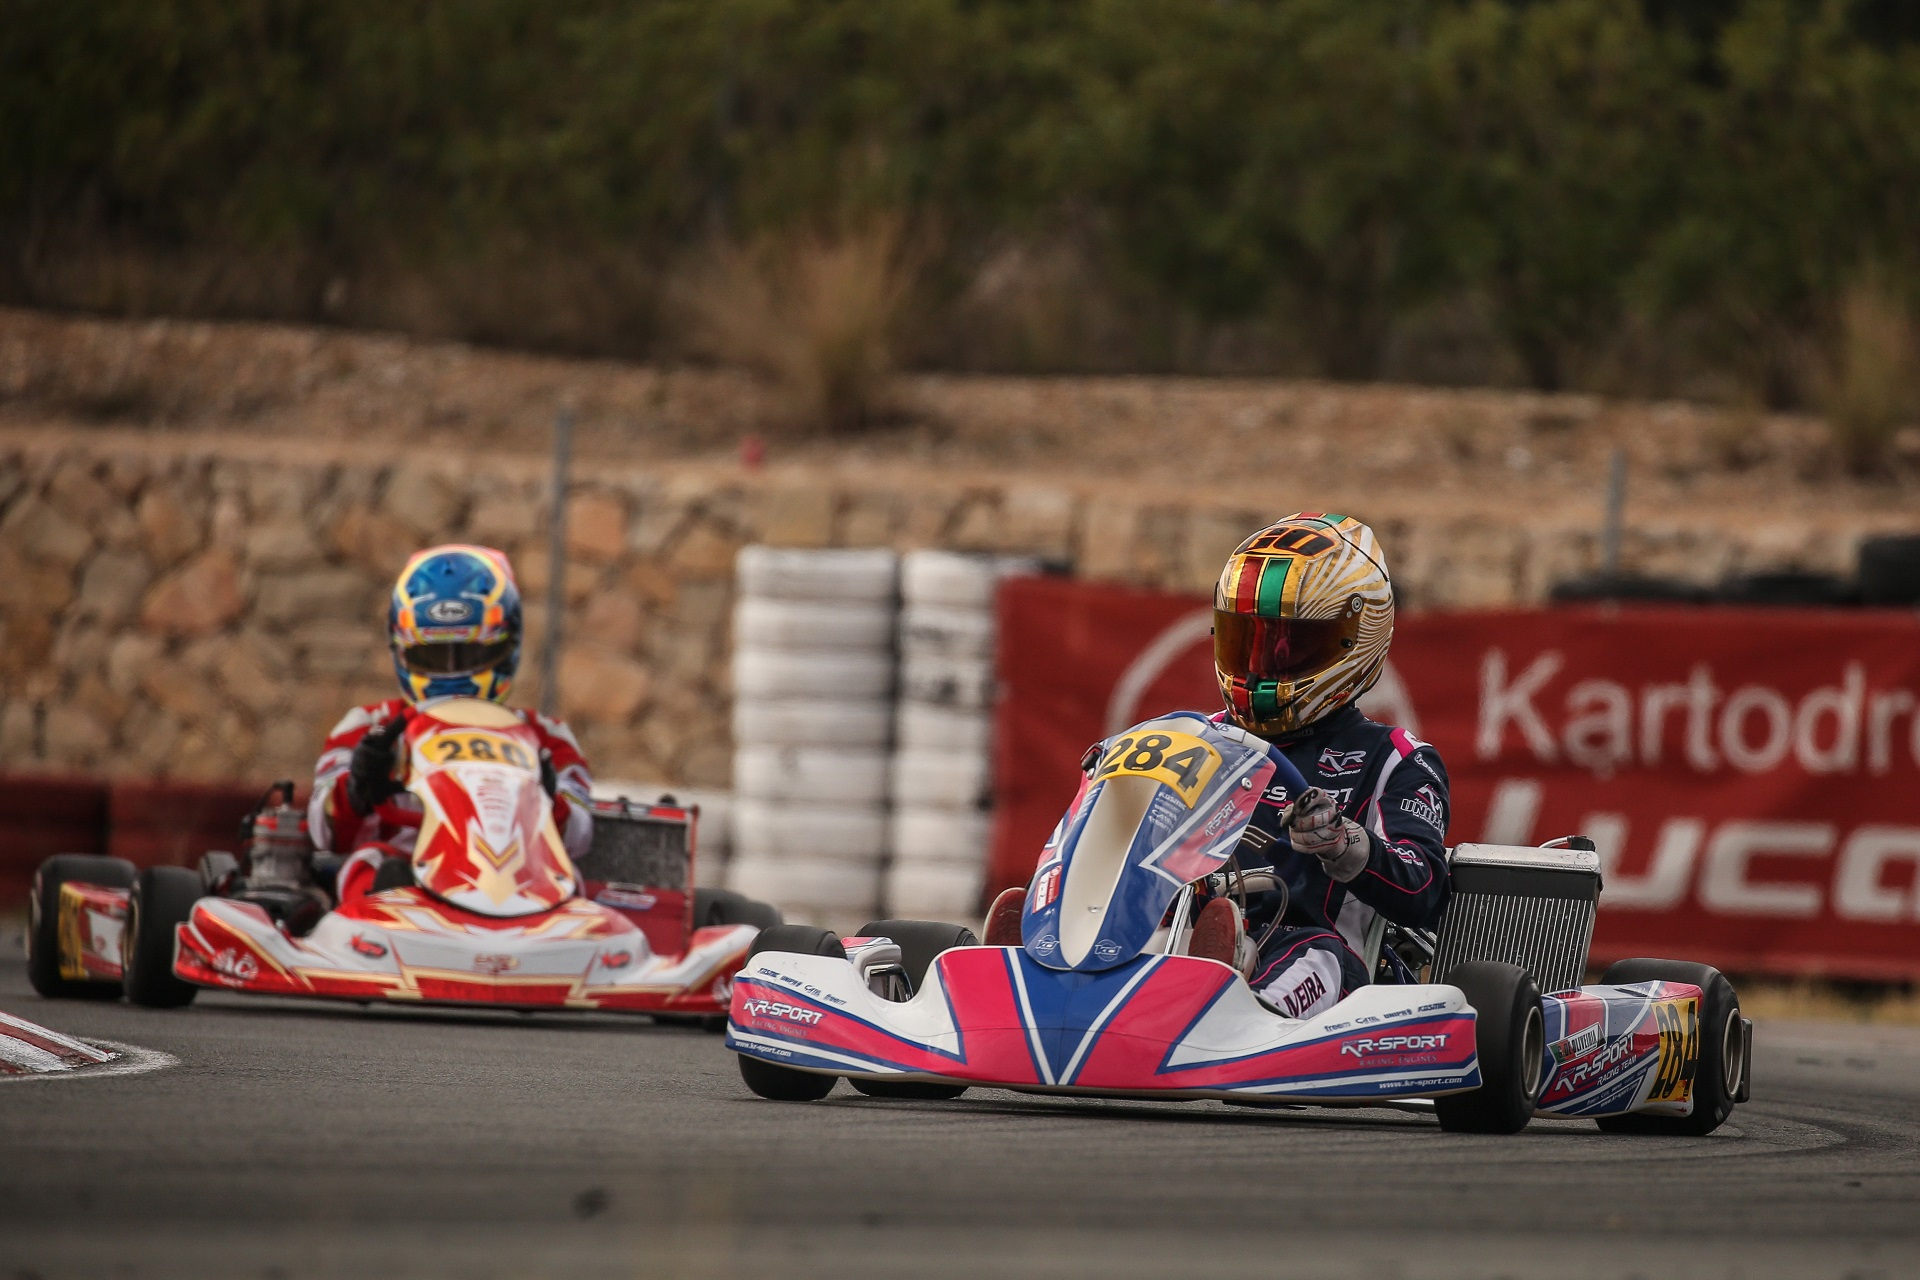 Guilherme de Oliveira 11.º classificado na Final Sénior da Iame Winter Cup 2020